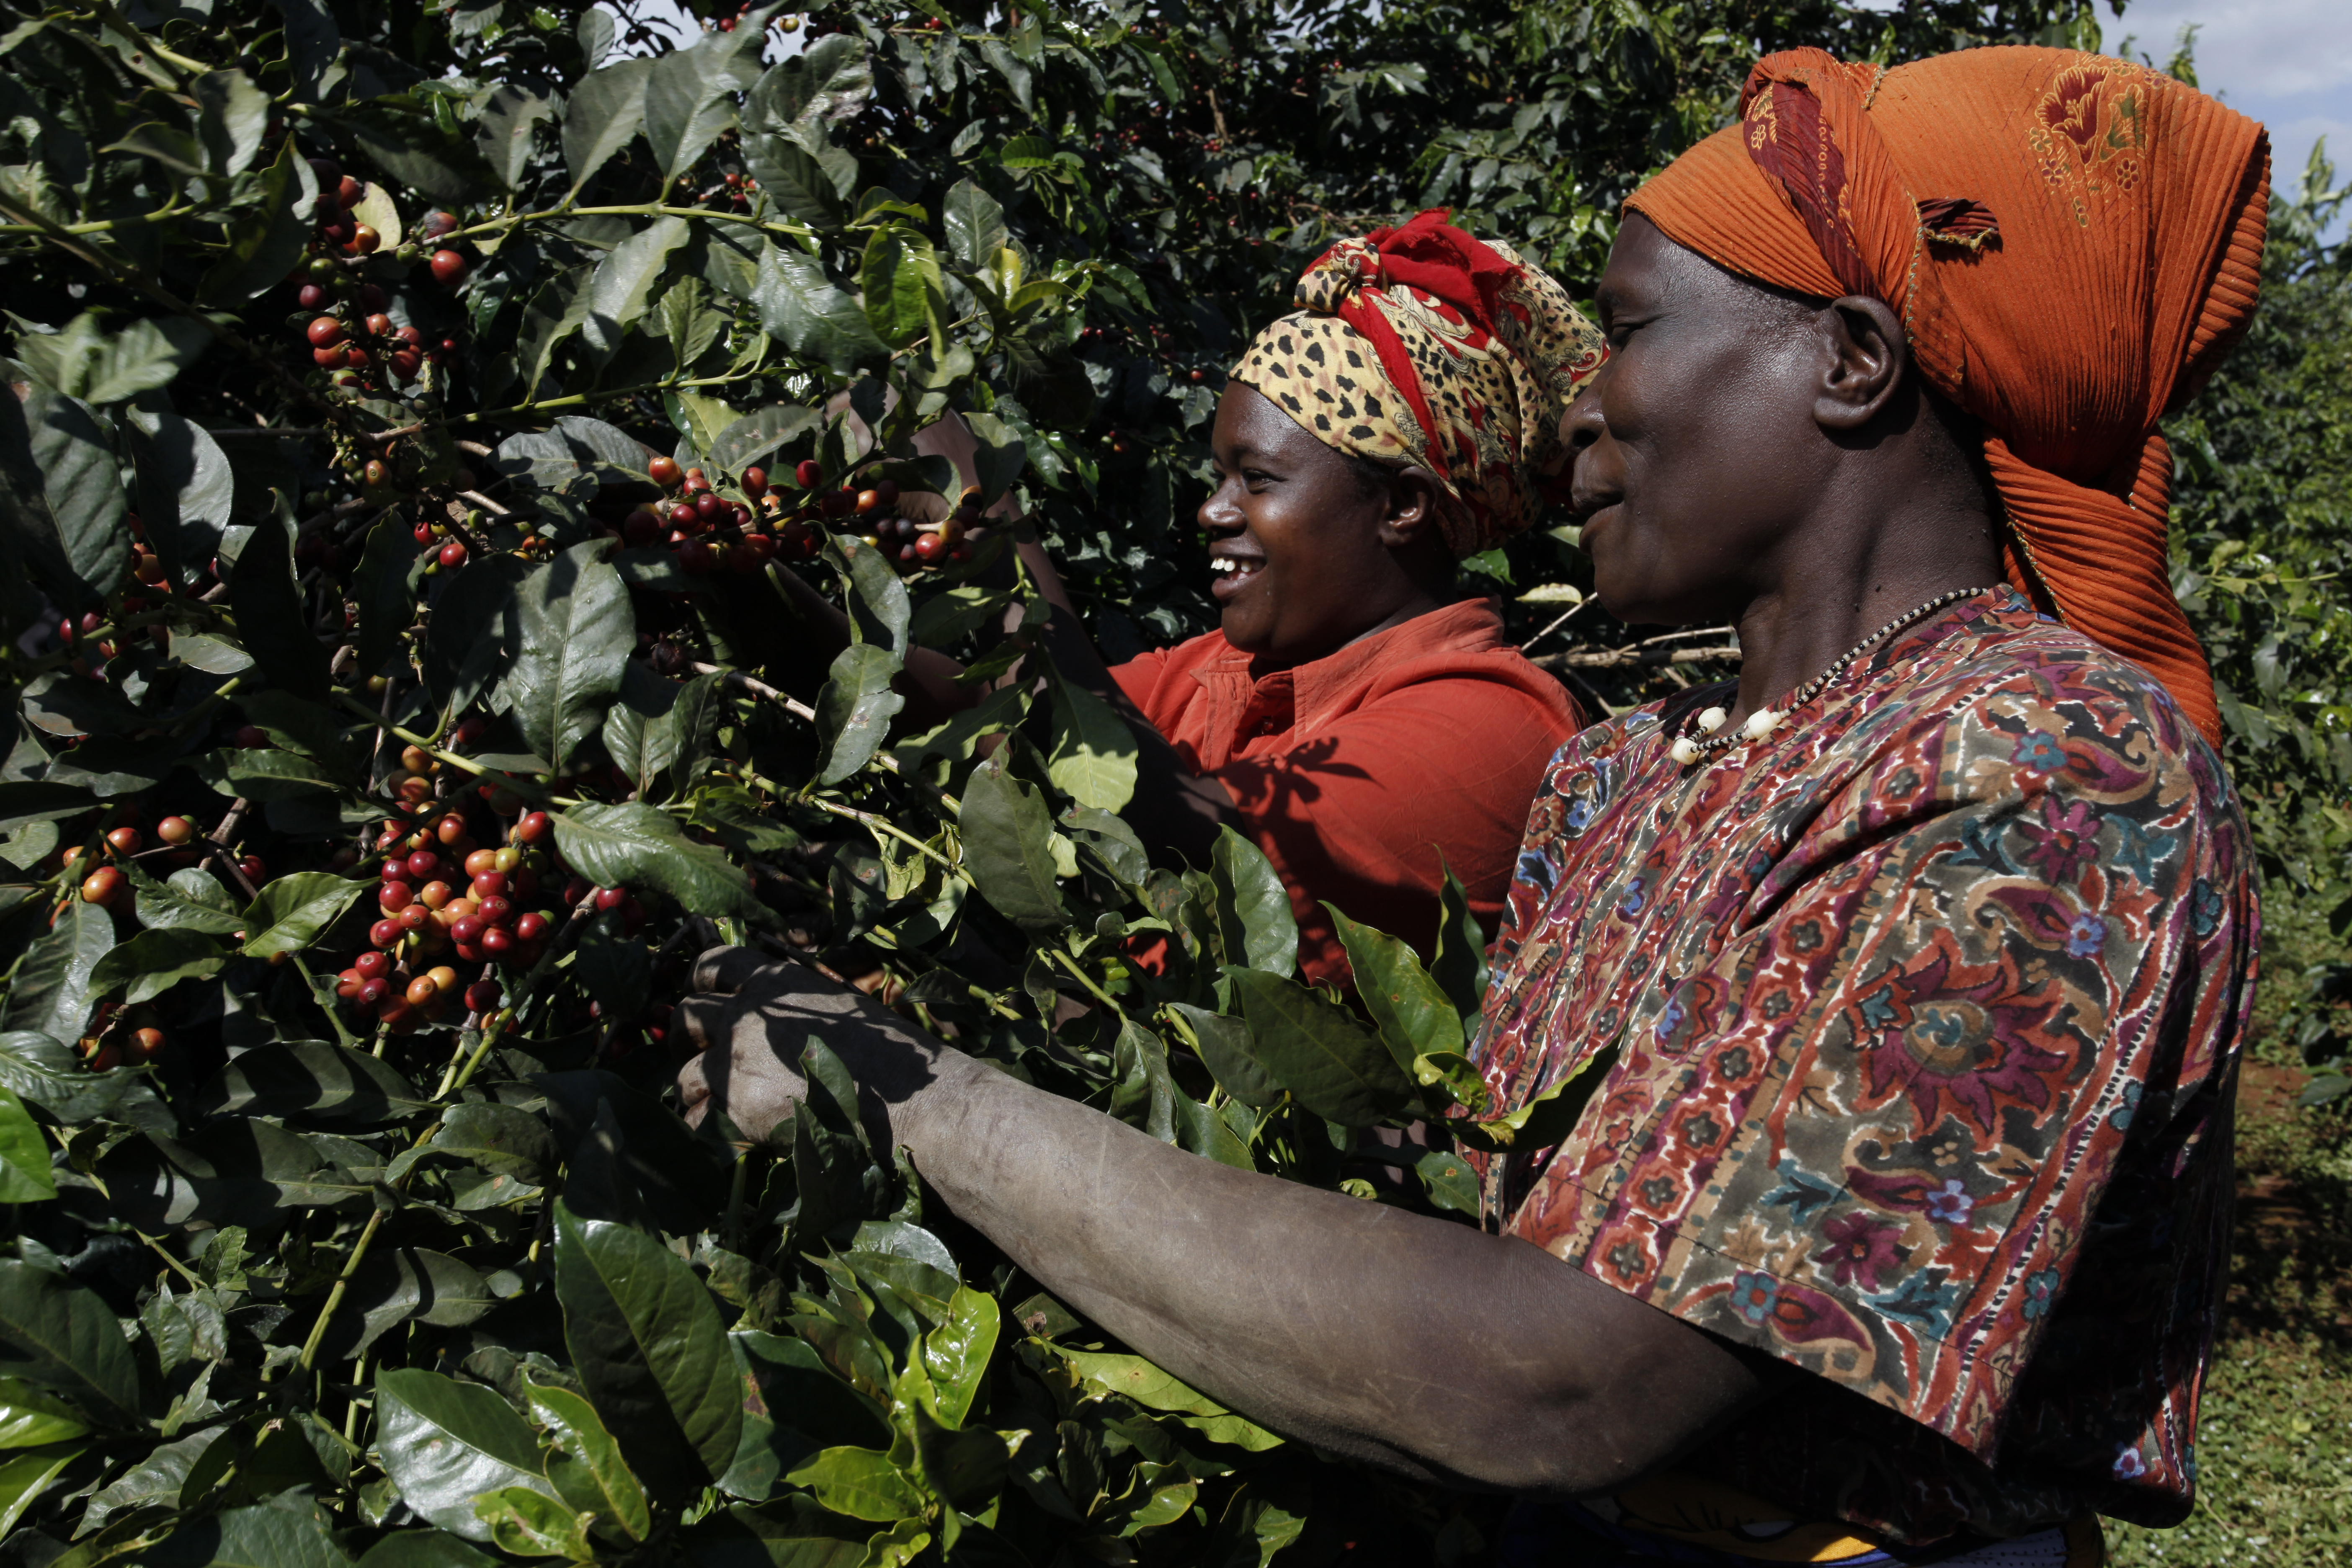 Coffee farmers selectively handpicking ripe cherries